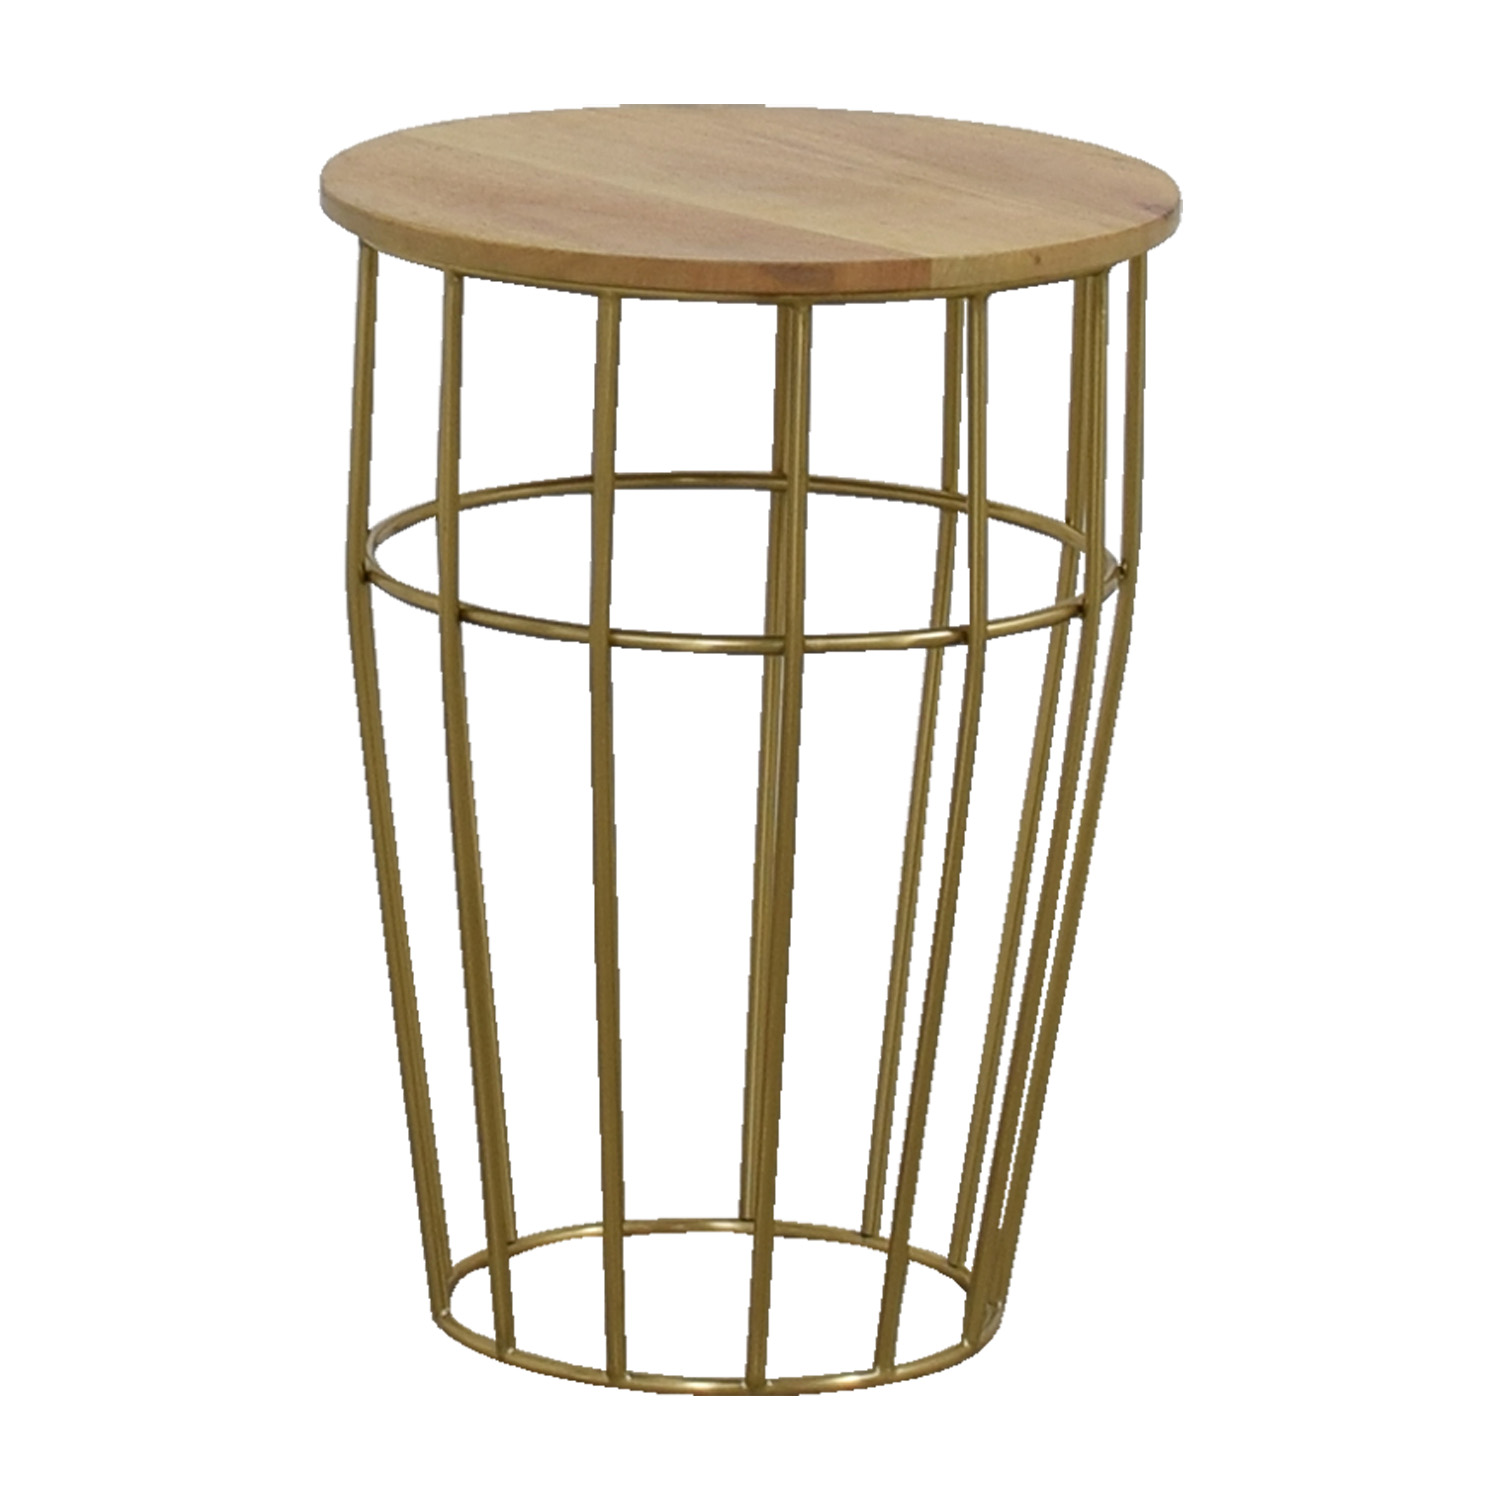 West Elm West Elm Gold And Wood Side Table / Tables